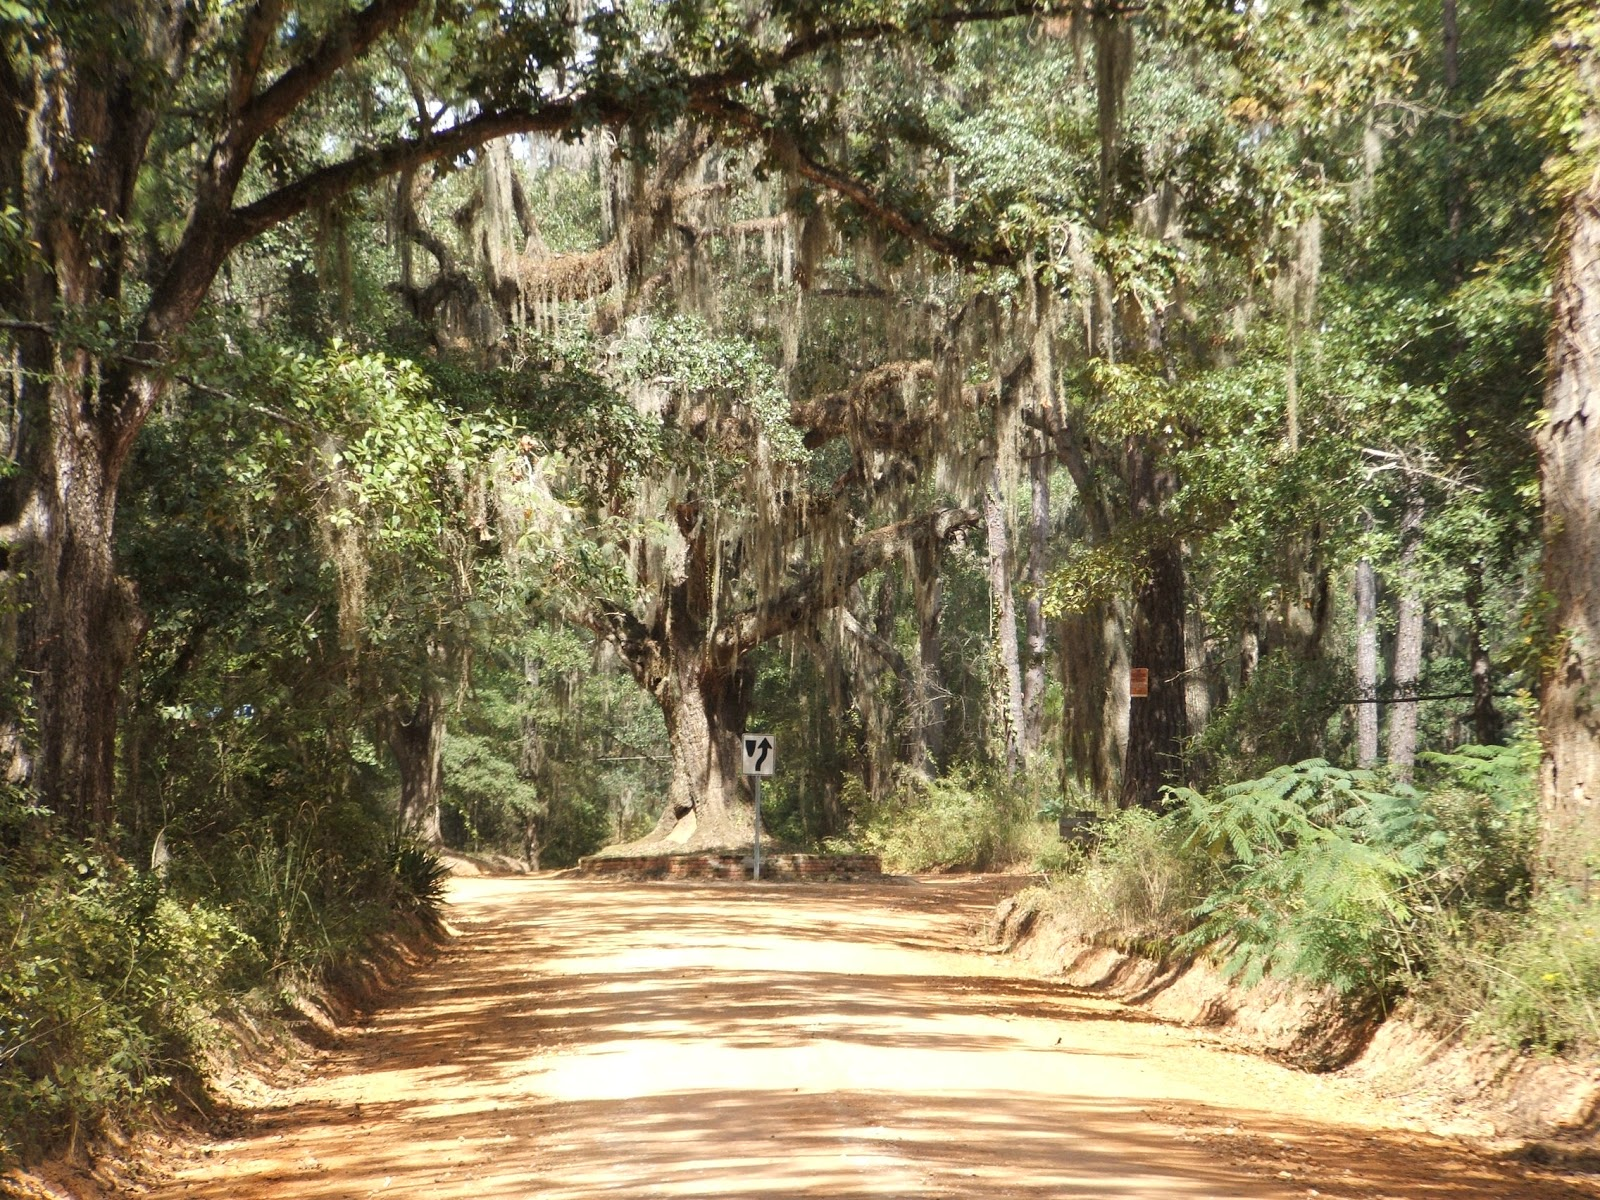 THE COTTON TRAIL Canopy Road Automobile Tour & Rediscovering Florida: CANOPY ROADS u0026 COUNTRY LANES u2013 The Canopy ...